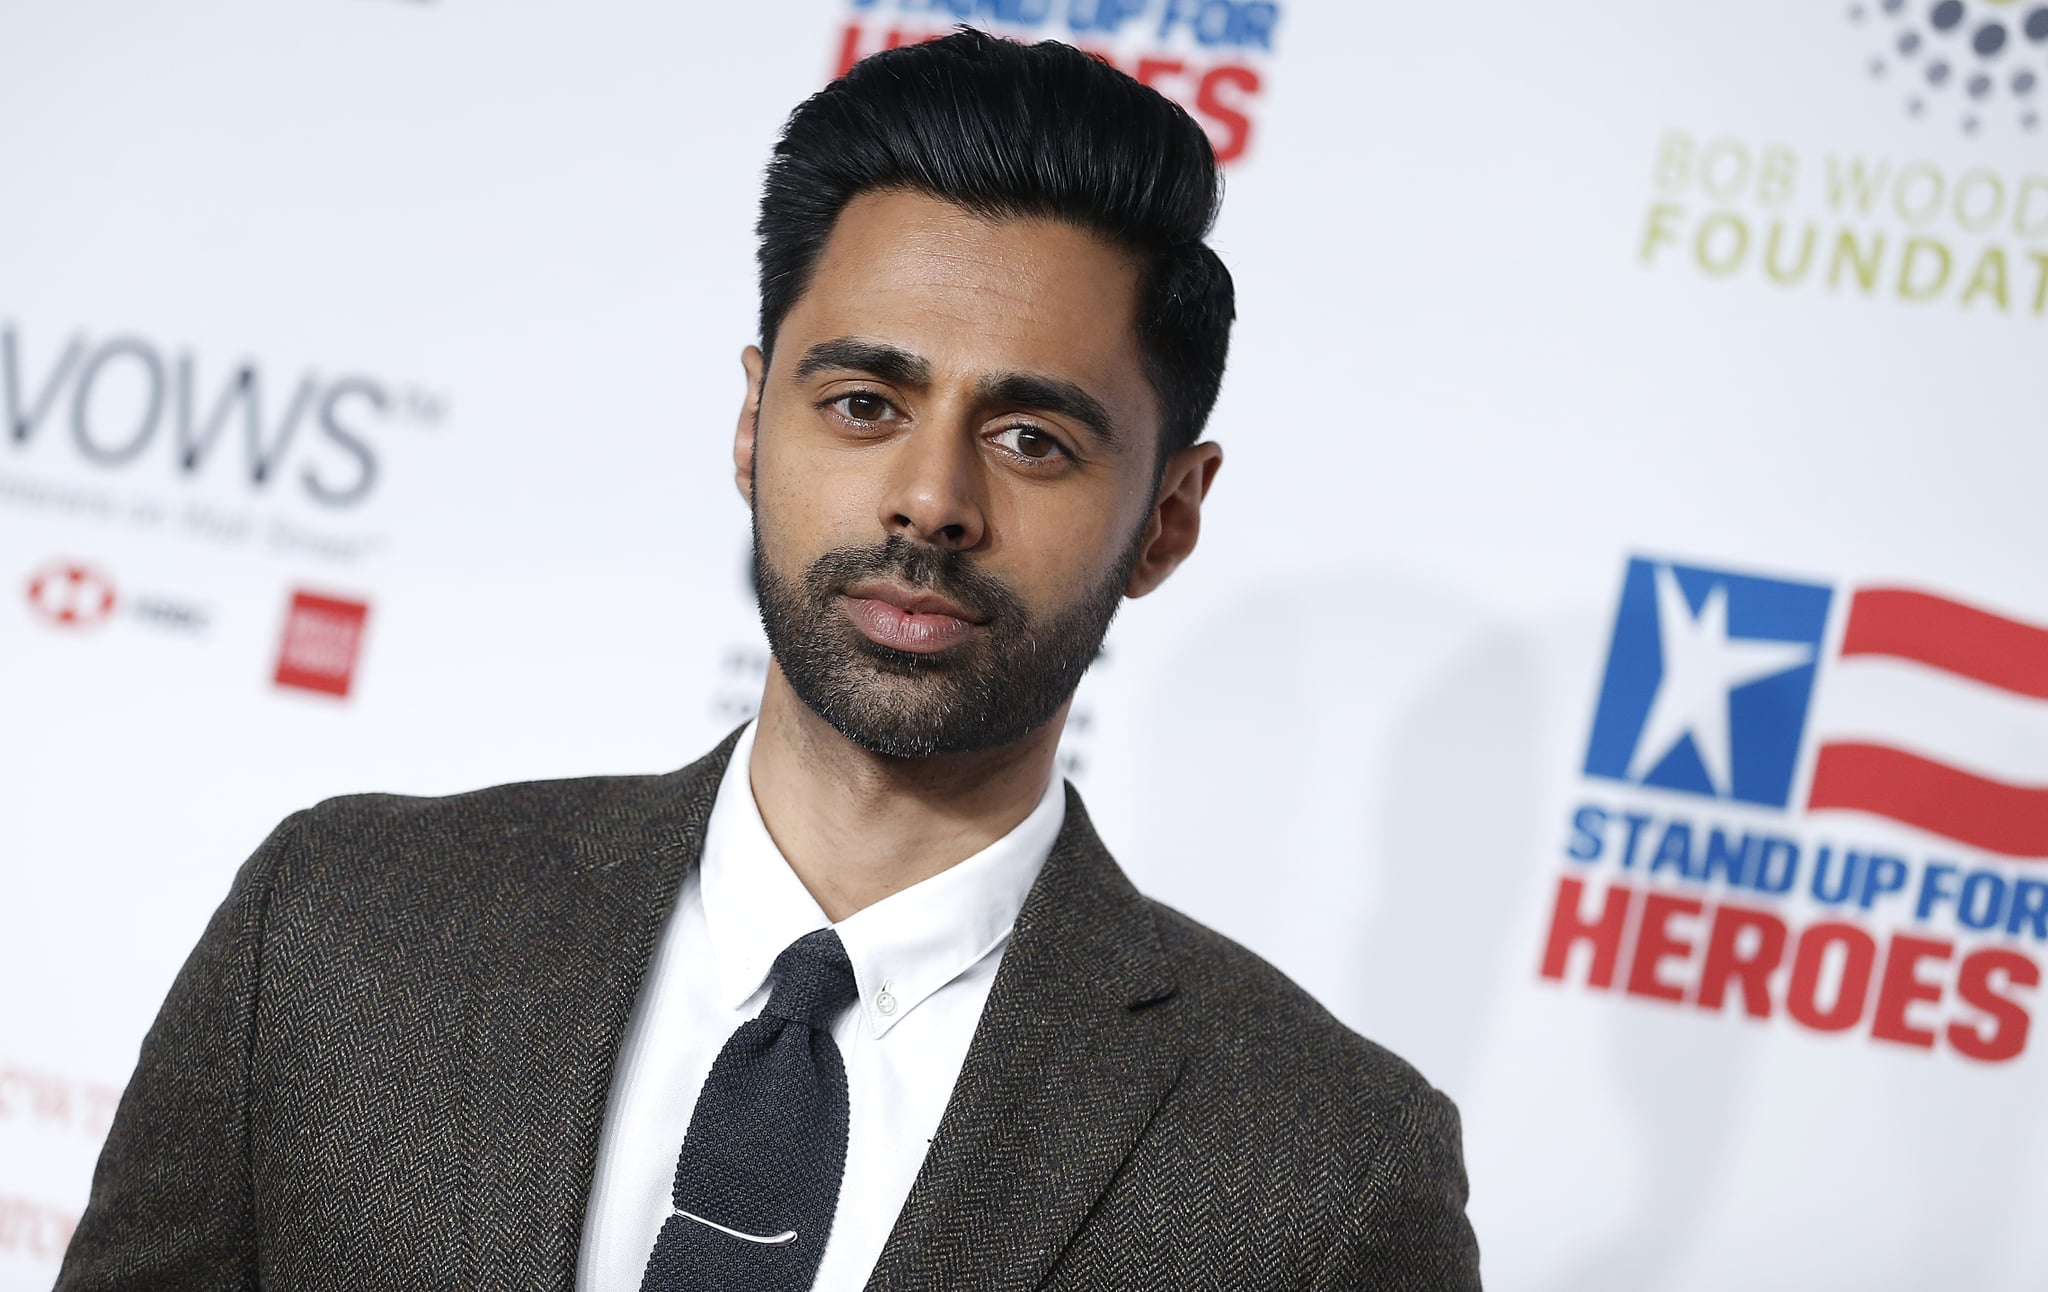 NEW YORK, NEW YORK - NOVEMBER 04 Hasan Minhaj attends 13th Annual Stand Up For Heroes at The Hulu Theater at Madison Square Garden on November 04, 2019 in New York City. (Photo by John Lamparski/Getty Images)